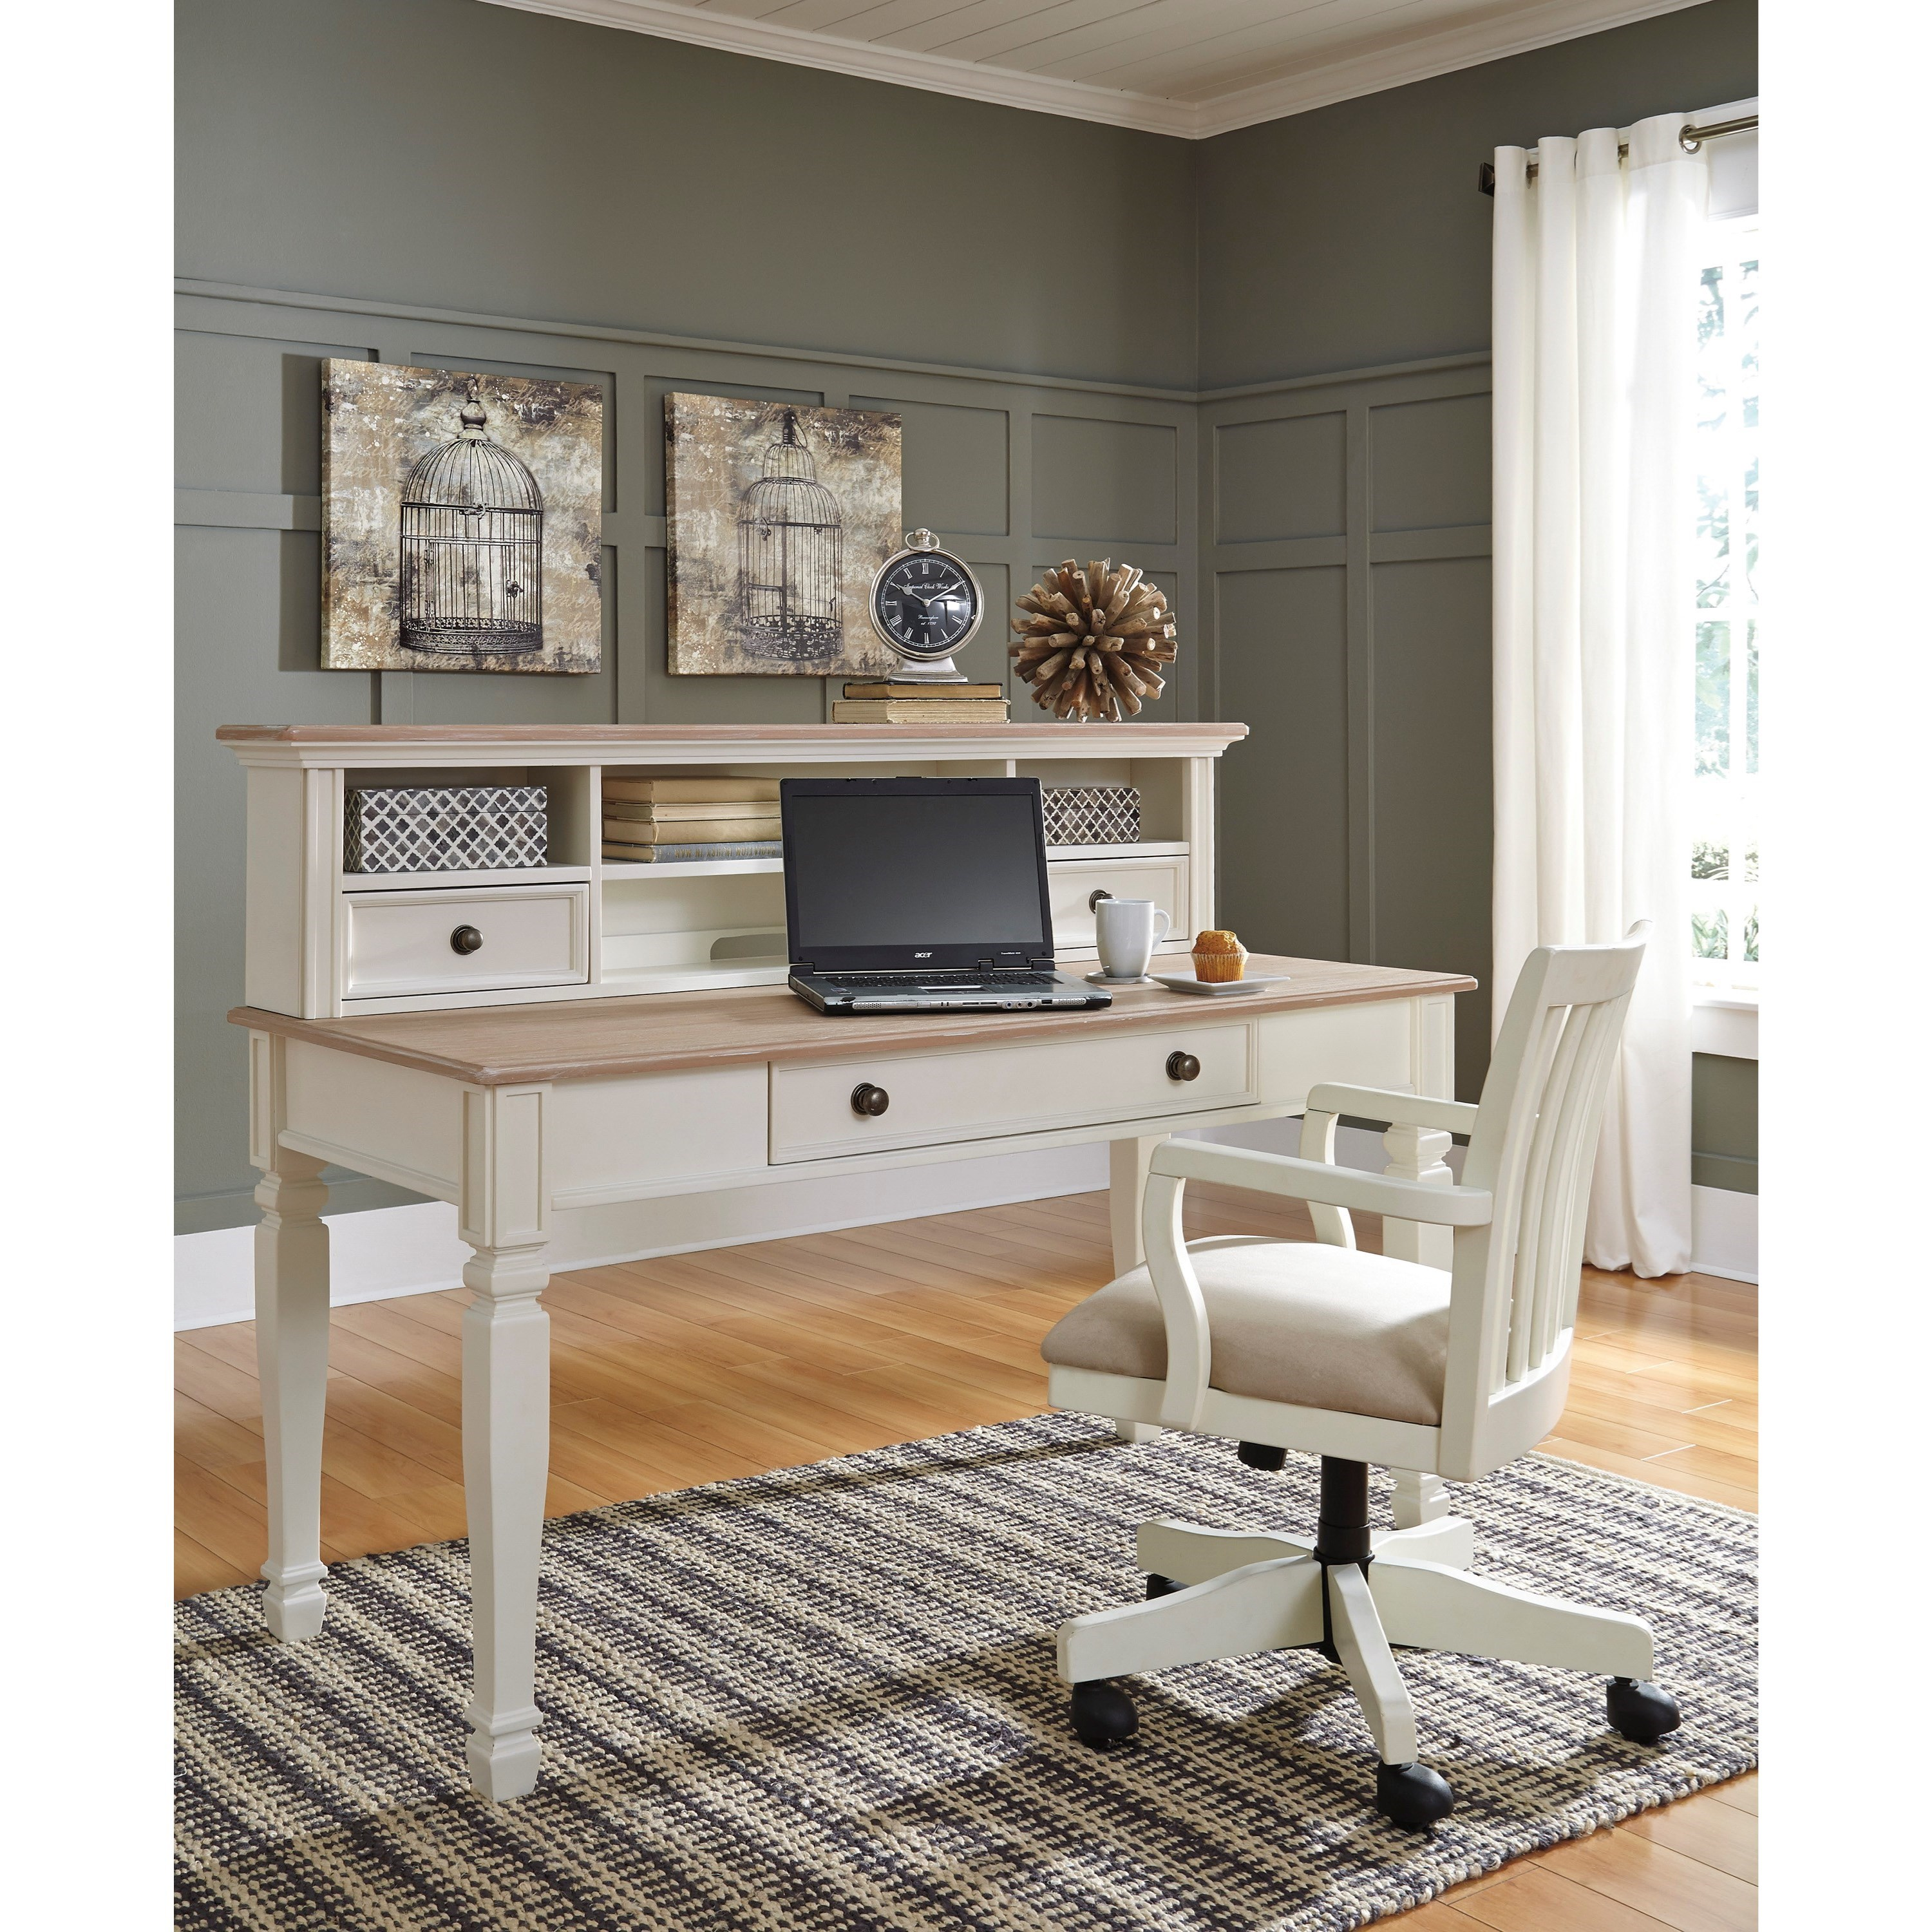 Signature design by ashley sarvanny home office large leg for Signature home designs